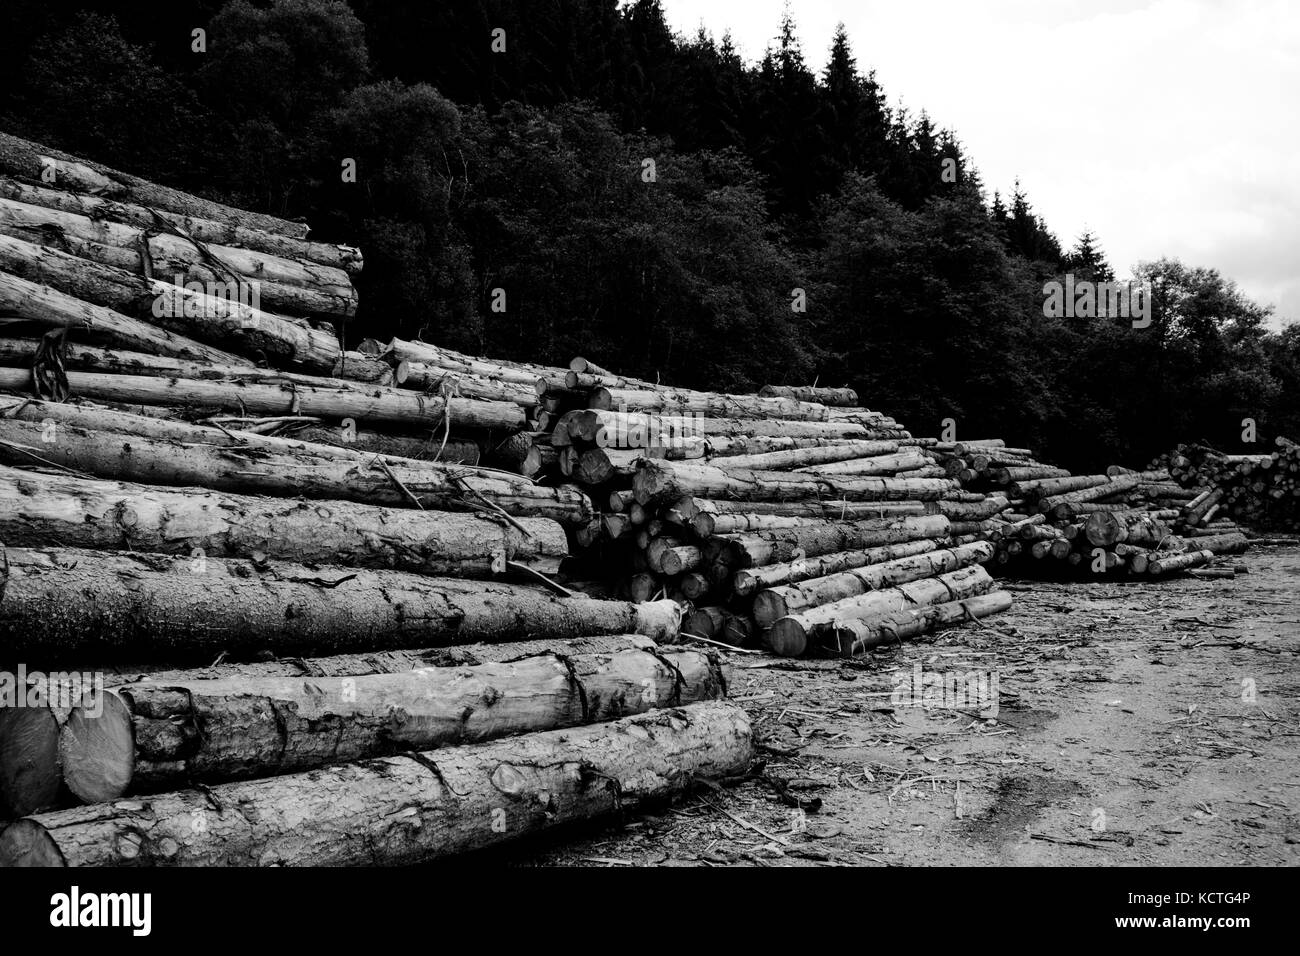 Stacks Of Logs In Forest Against Cloudy Sky - Stock Image